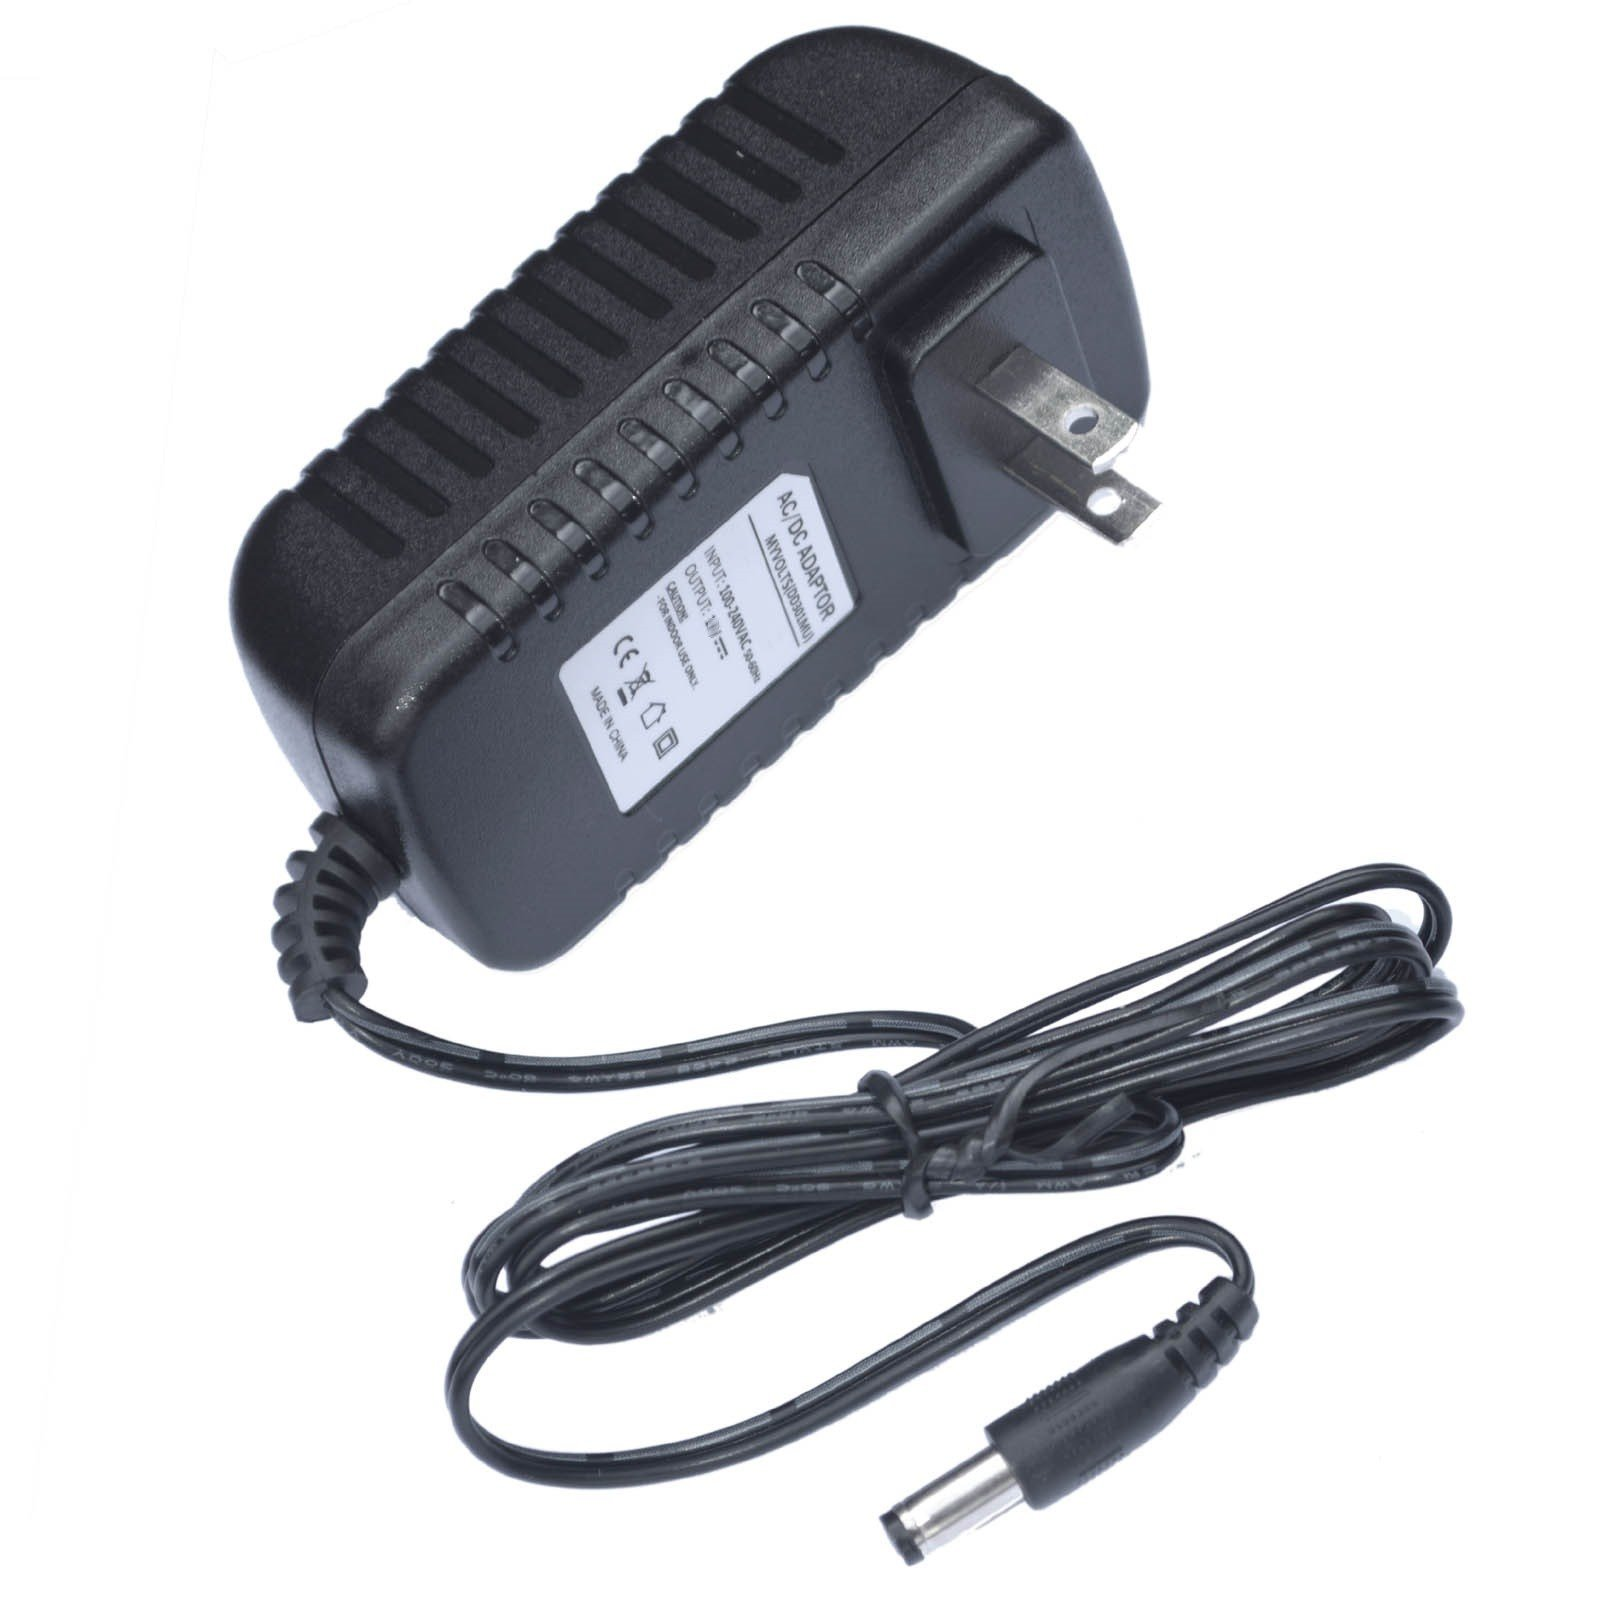 MyVolts 12V Power Supply Adaptor Compatible with Vonage V-Portal ATA - US Plug by MyVolts